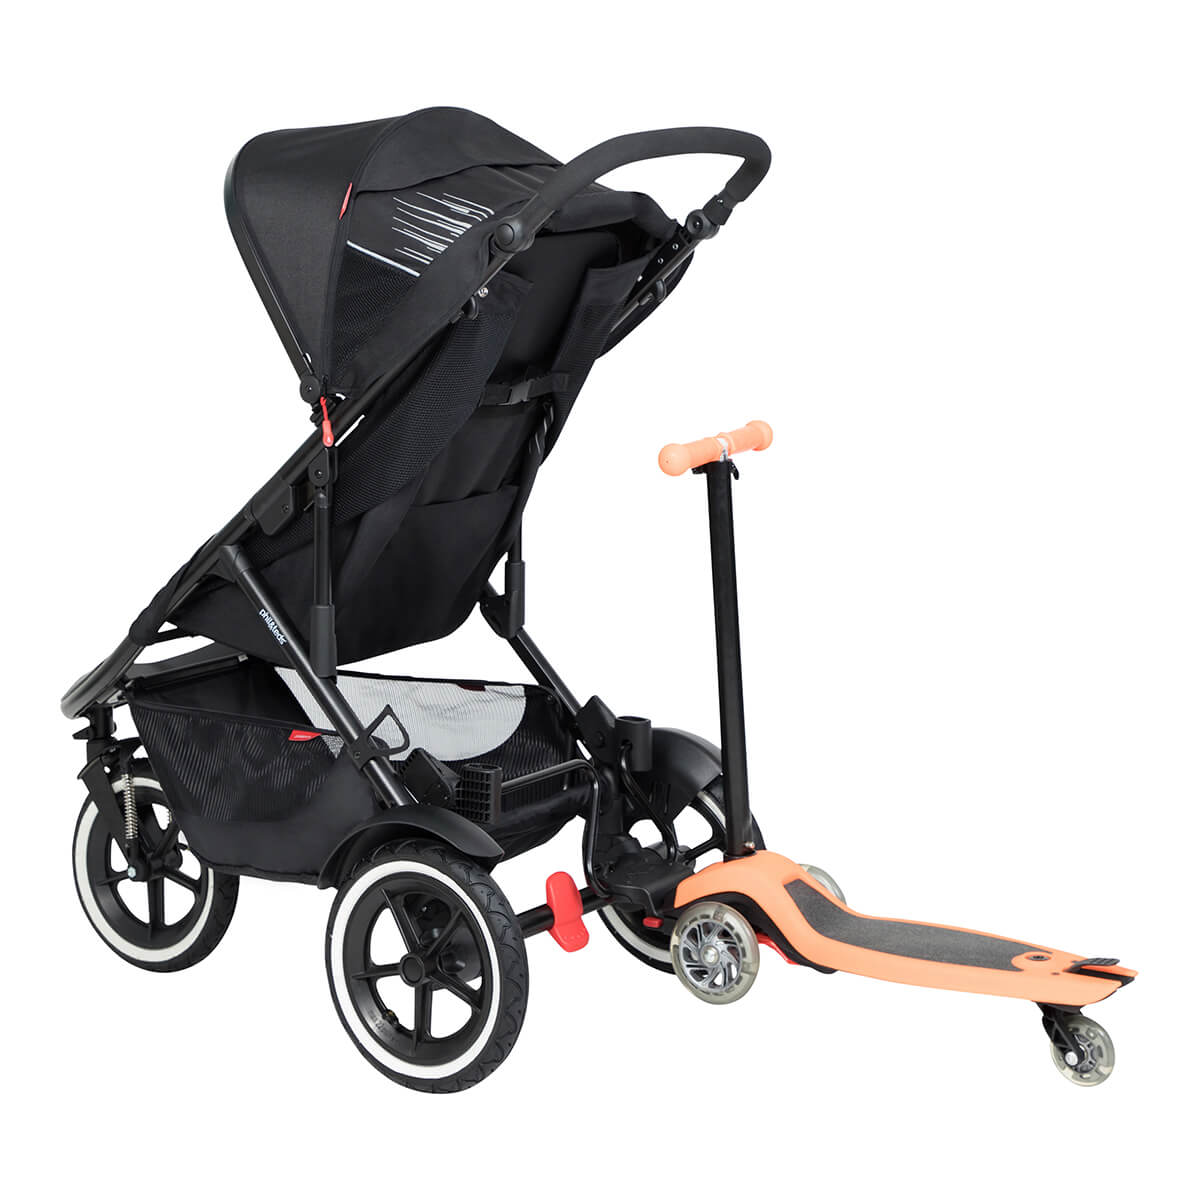 https://cdn.accentuate.io/4509528326232/19272668348504/philteds-sport-buggy-with-freerider-stroller-board-in-rear-v1626484468580.jpg?1200x1200